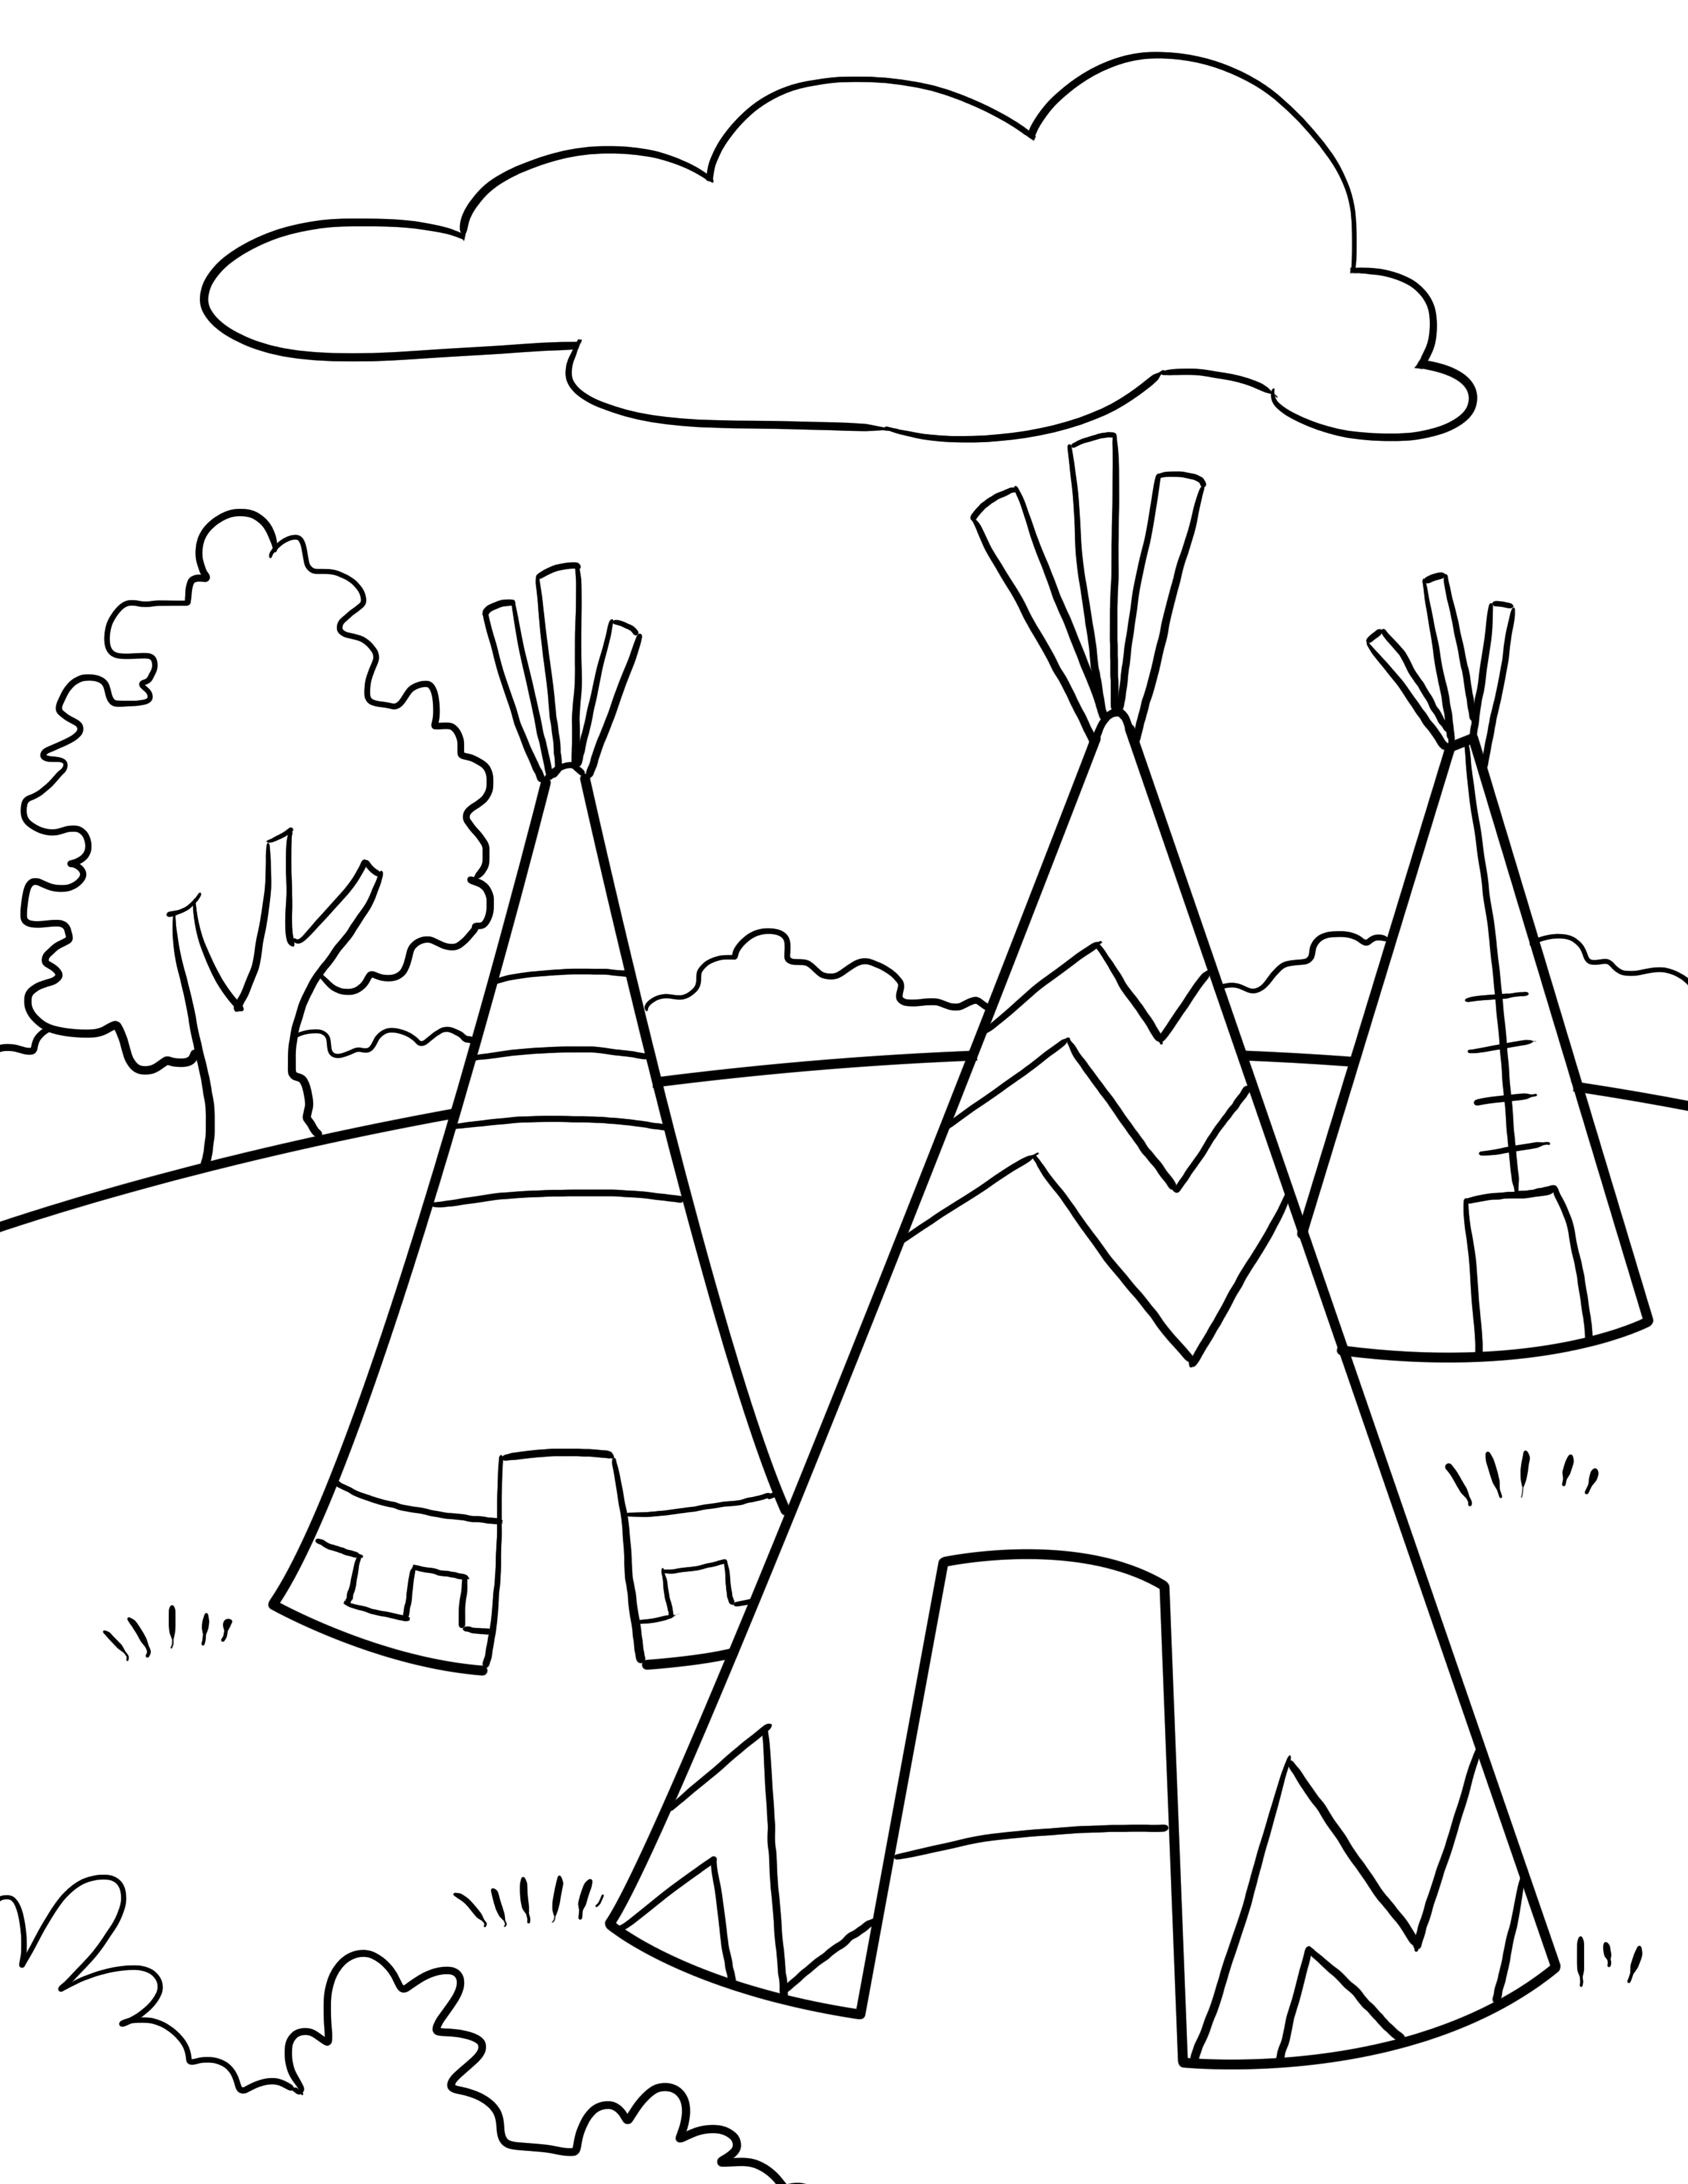 2550x3300 Willpower Native American Coloring Pages Best For Kids